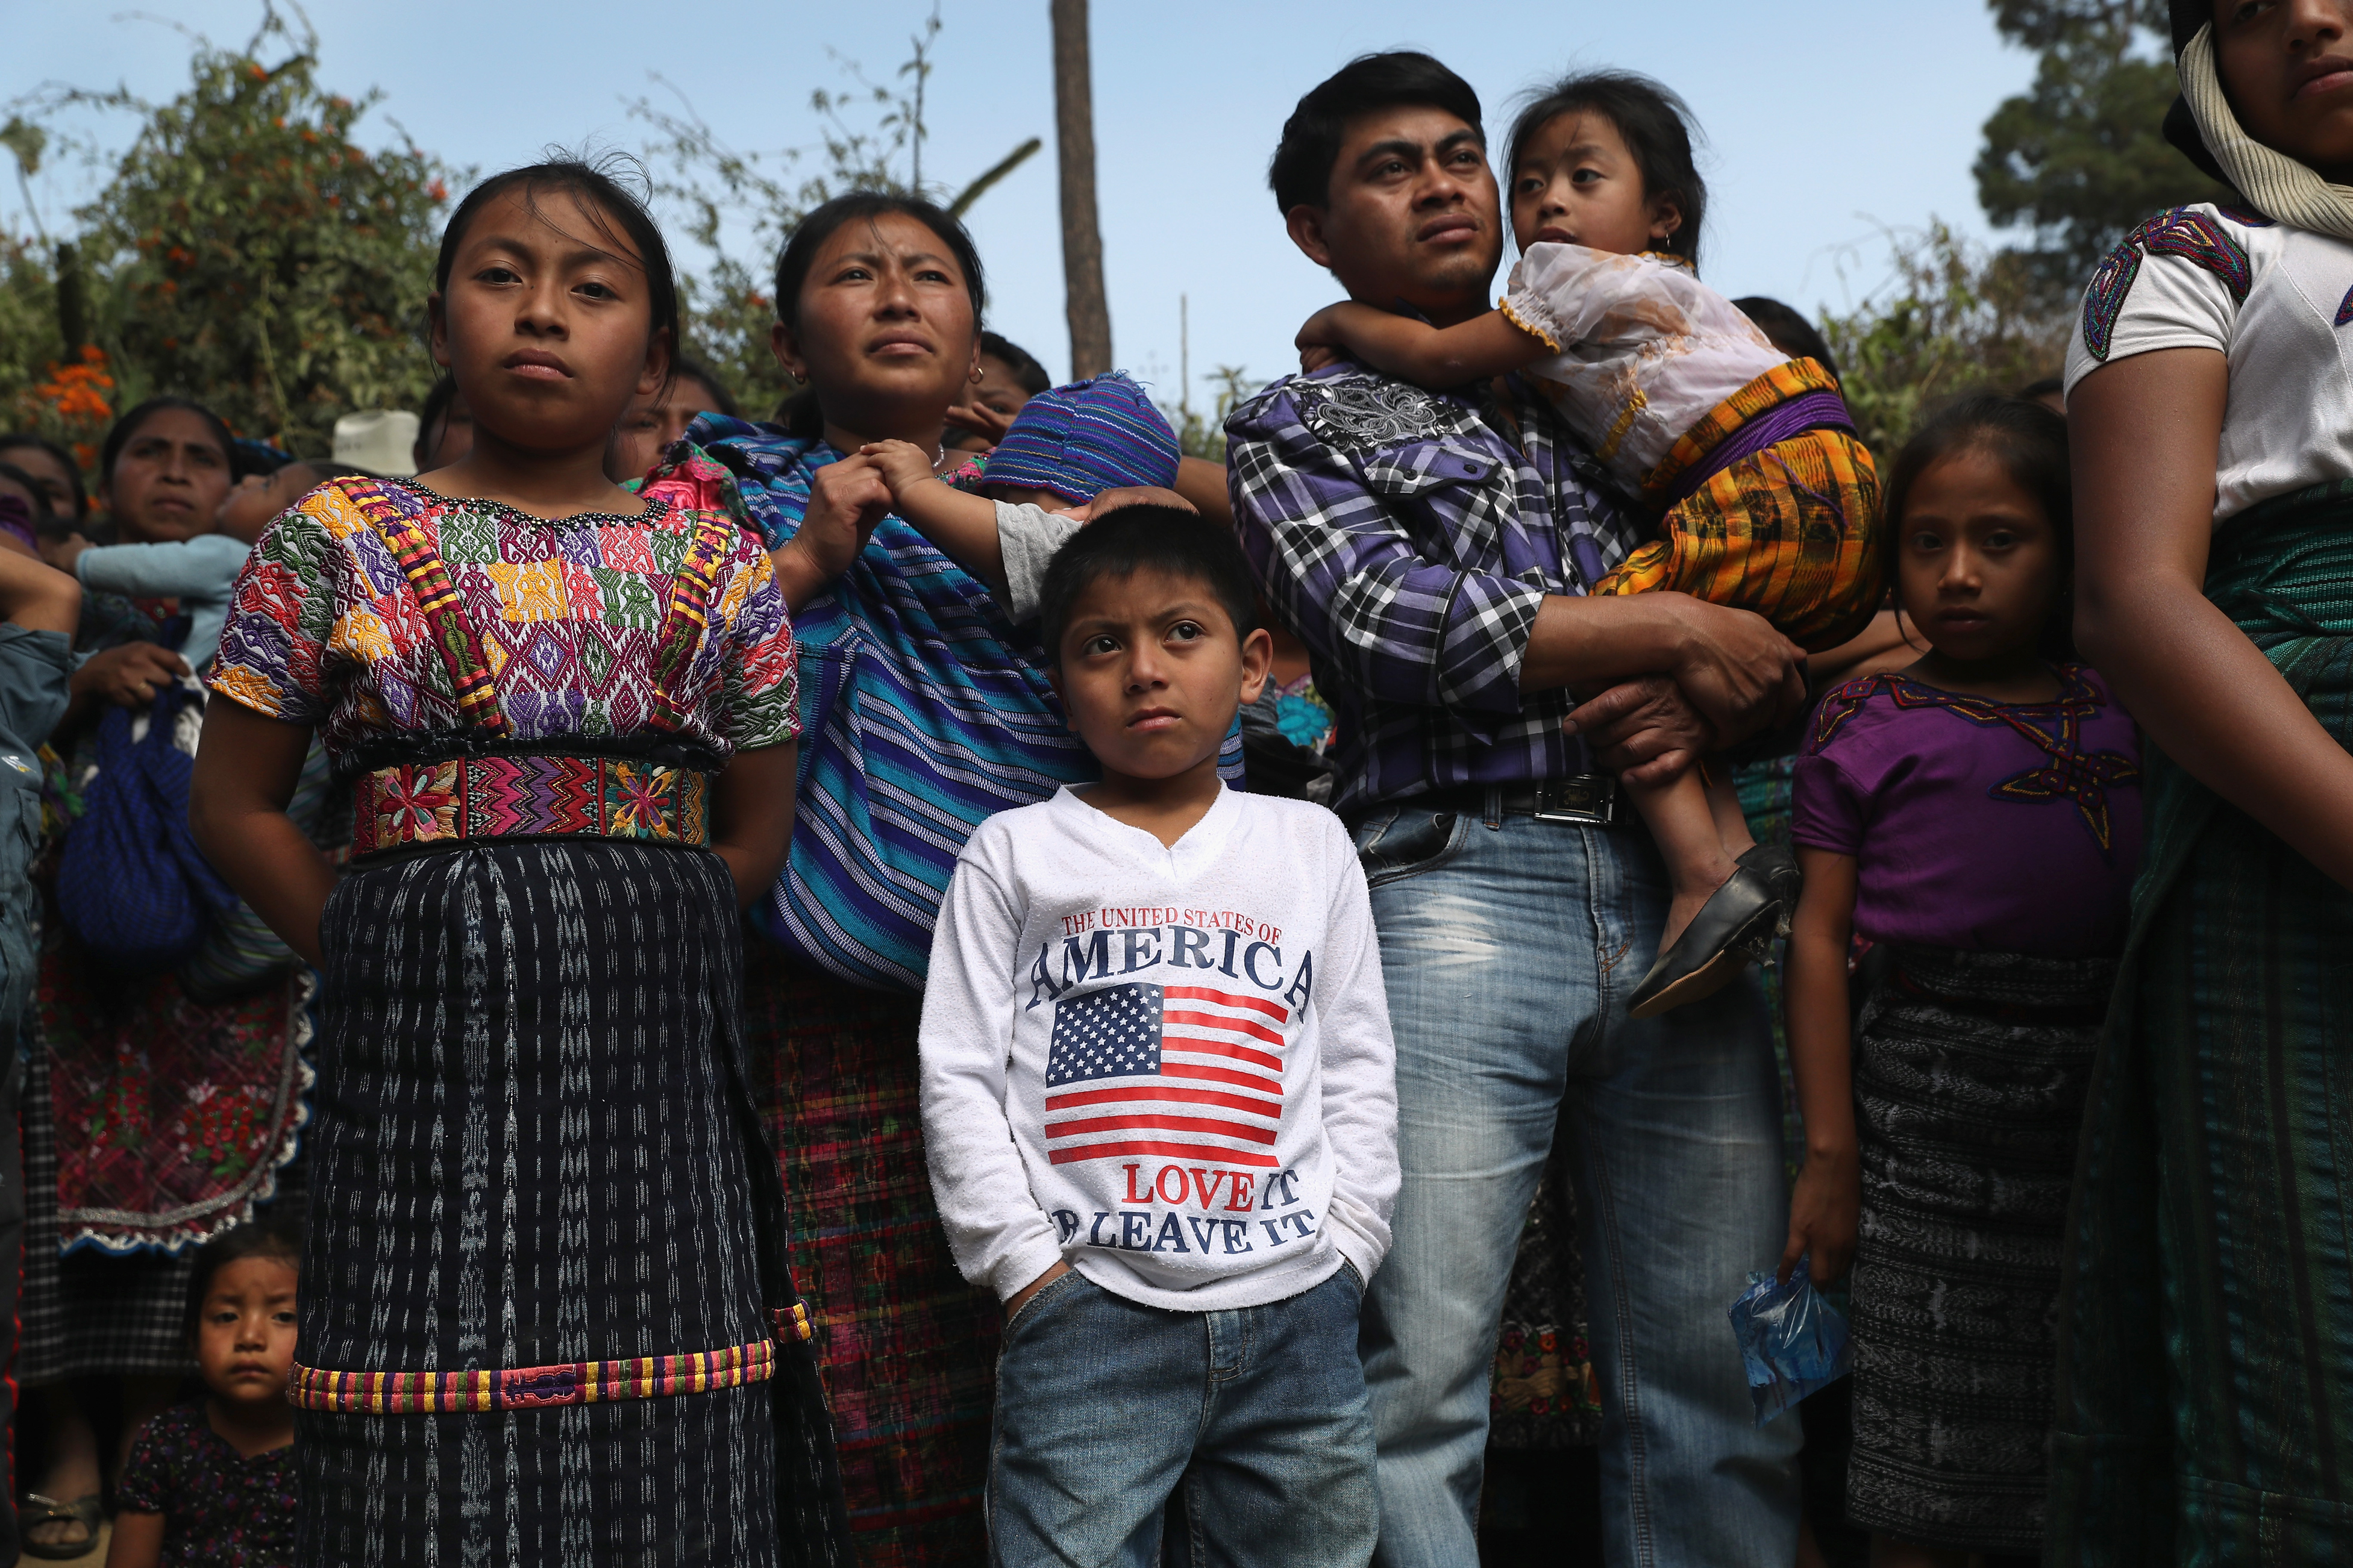 Families attend a memorial service for two boys who were kidnapped and killed in San Juan Sacatepequez, Guatemala on Feb. 14, 2017. More than 2,000 people walked in a funeral procession for Oscar Armando Top Cotzajay, 11, and Carlos Daniel Xiqin, 10 who were abducted walking to school Friday morning when they were abducted.